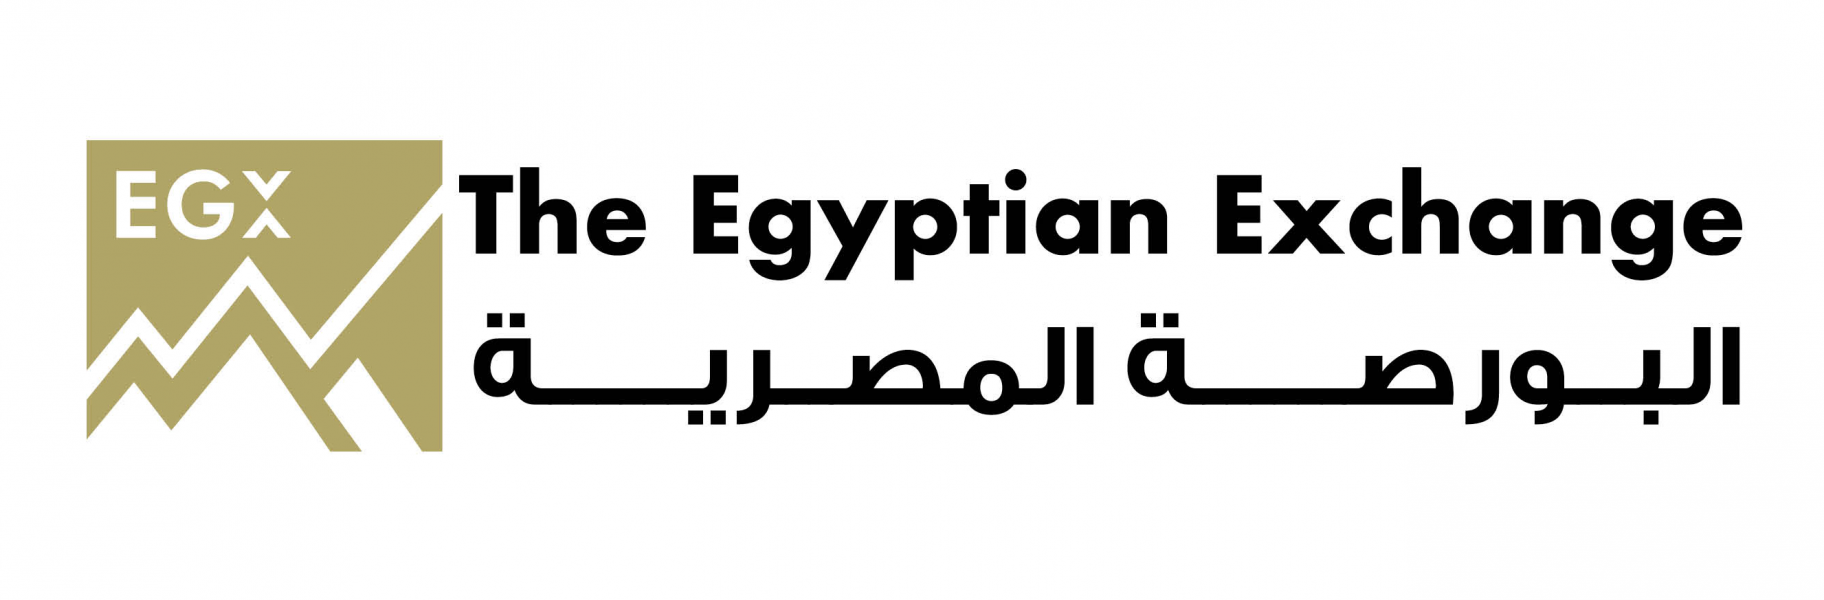 The-Egyptian-Exchange-Is-Leading-the-Process-of-Pr